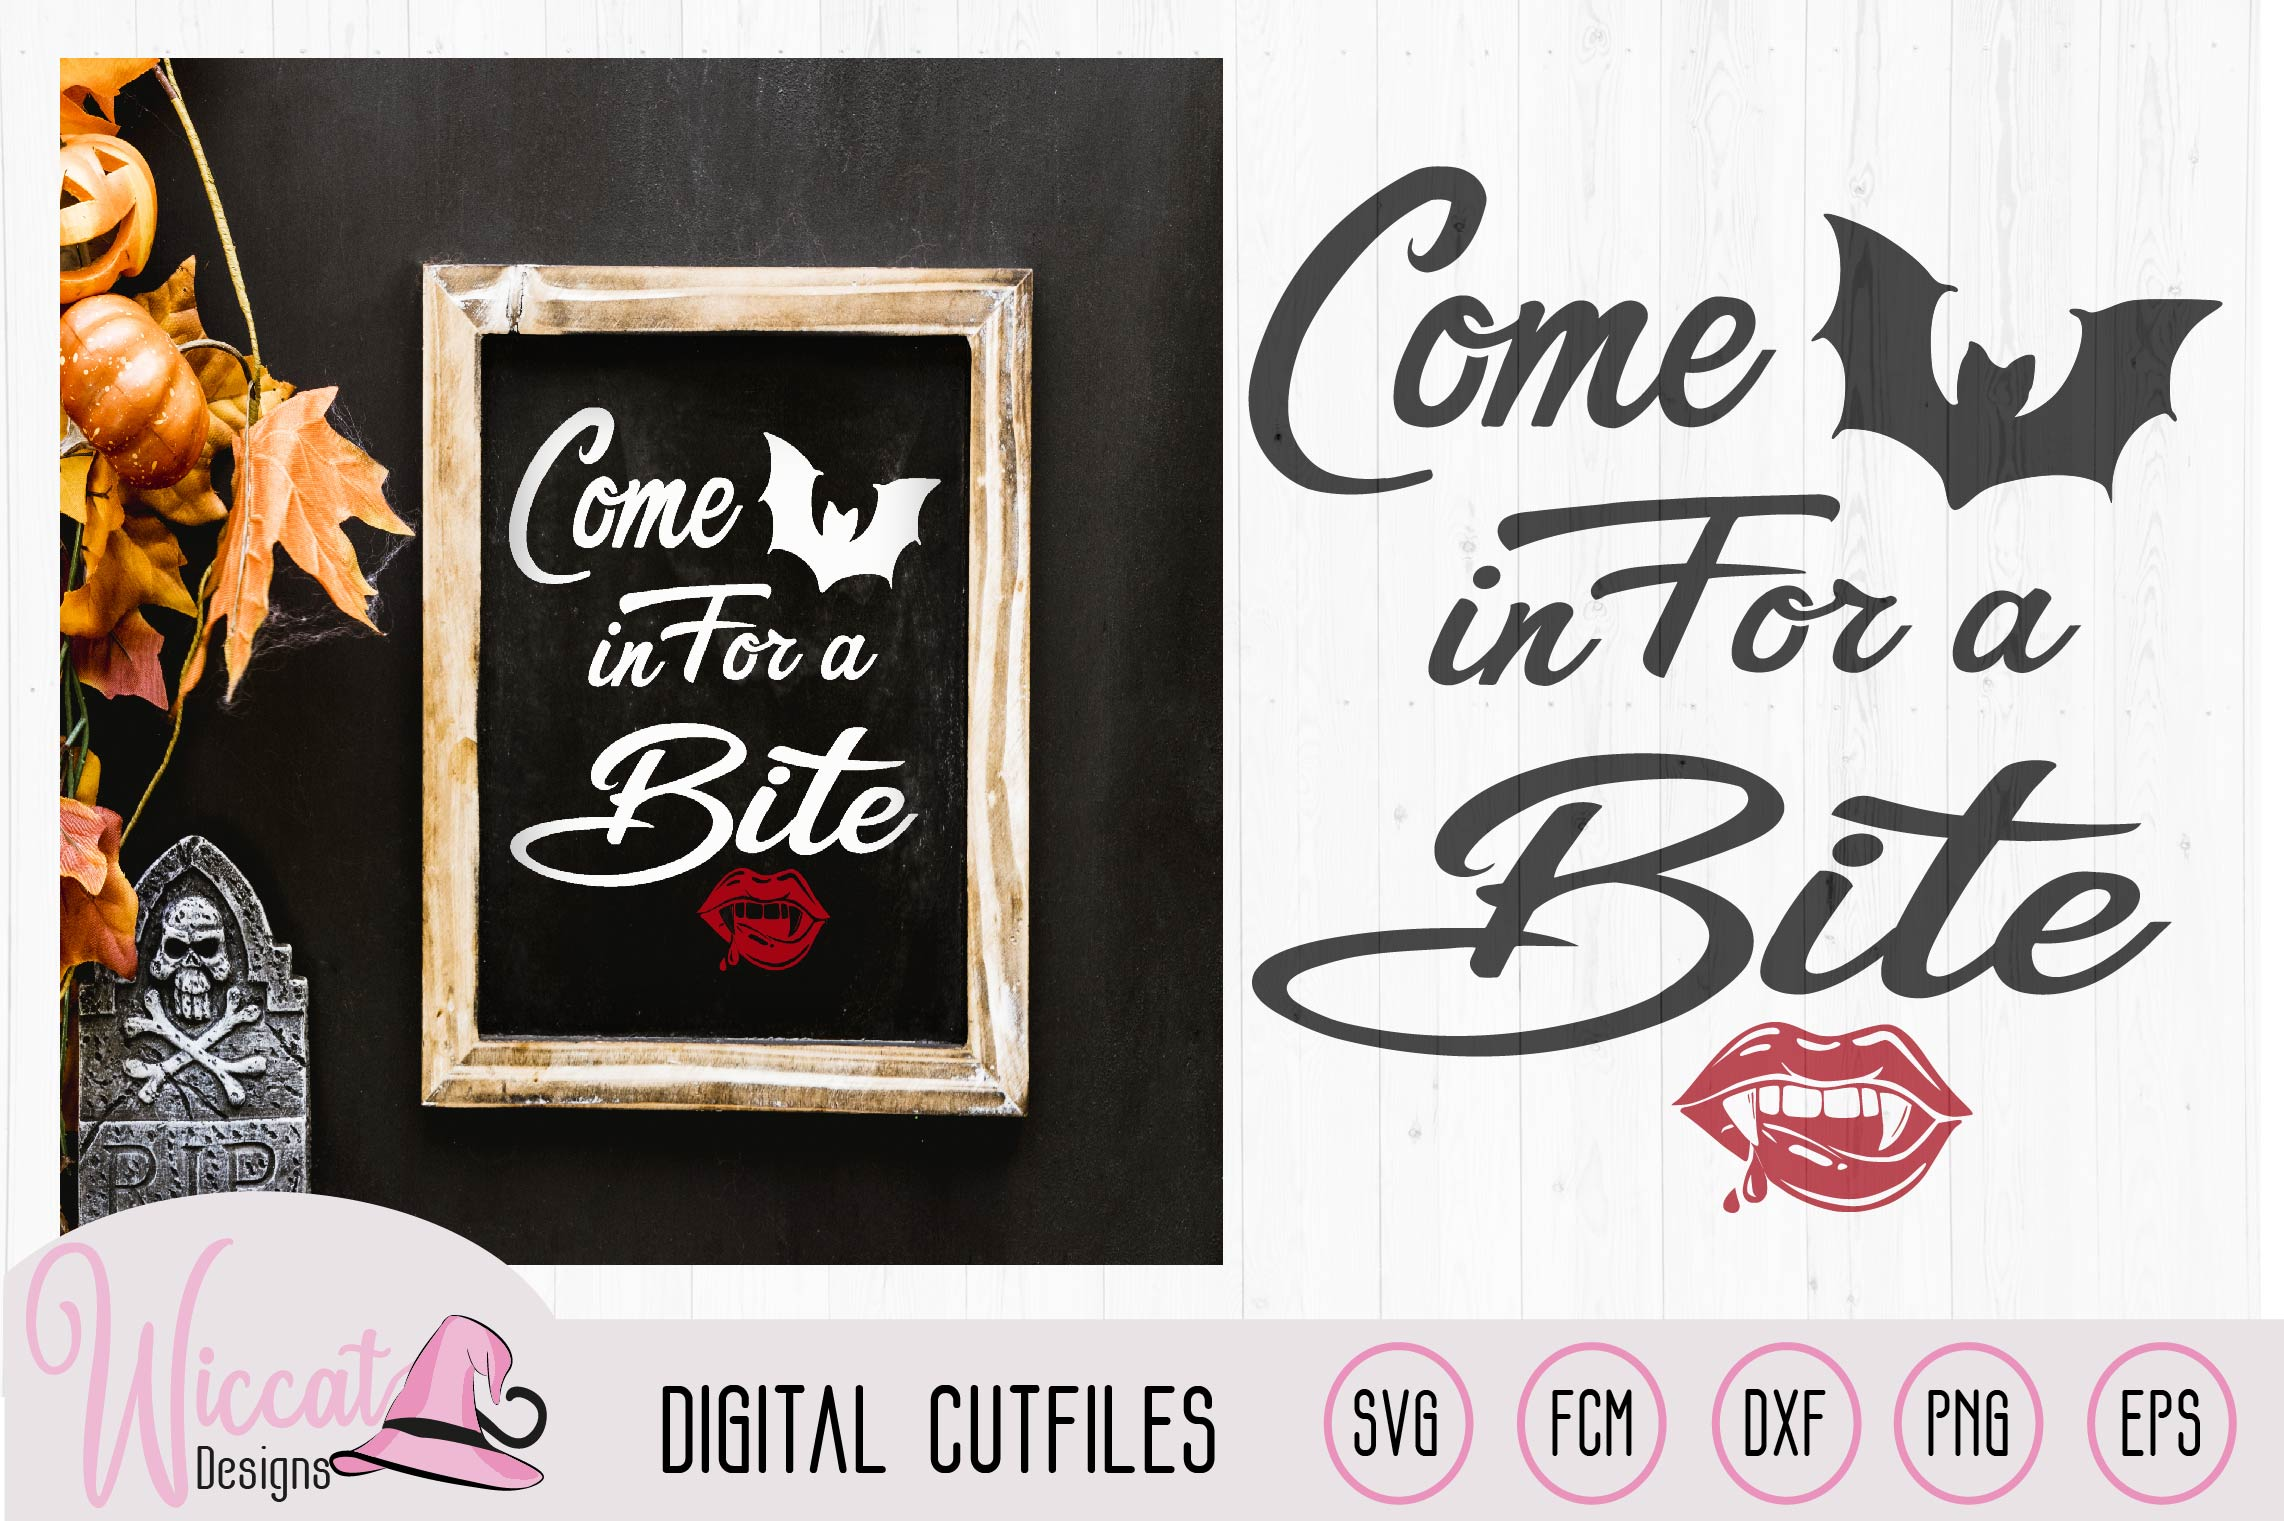 Download Free Come In For A Bite Doormat Quote Hall Graphic By Wiccatdesigns for Cricut Explore, Silhouette and other cutting machines.